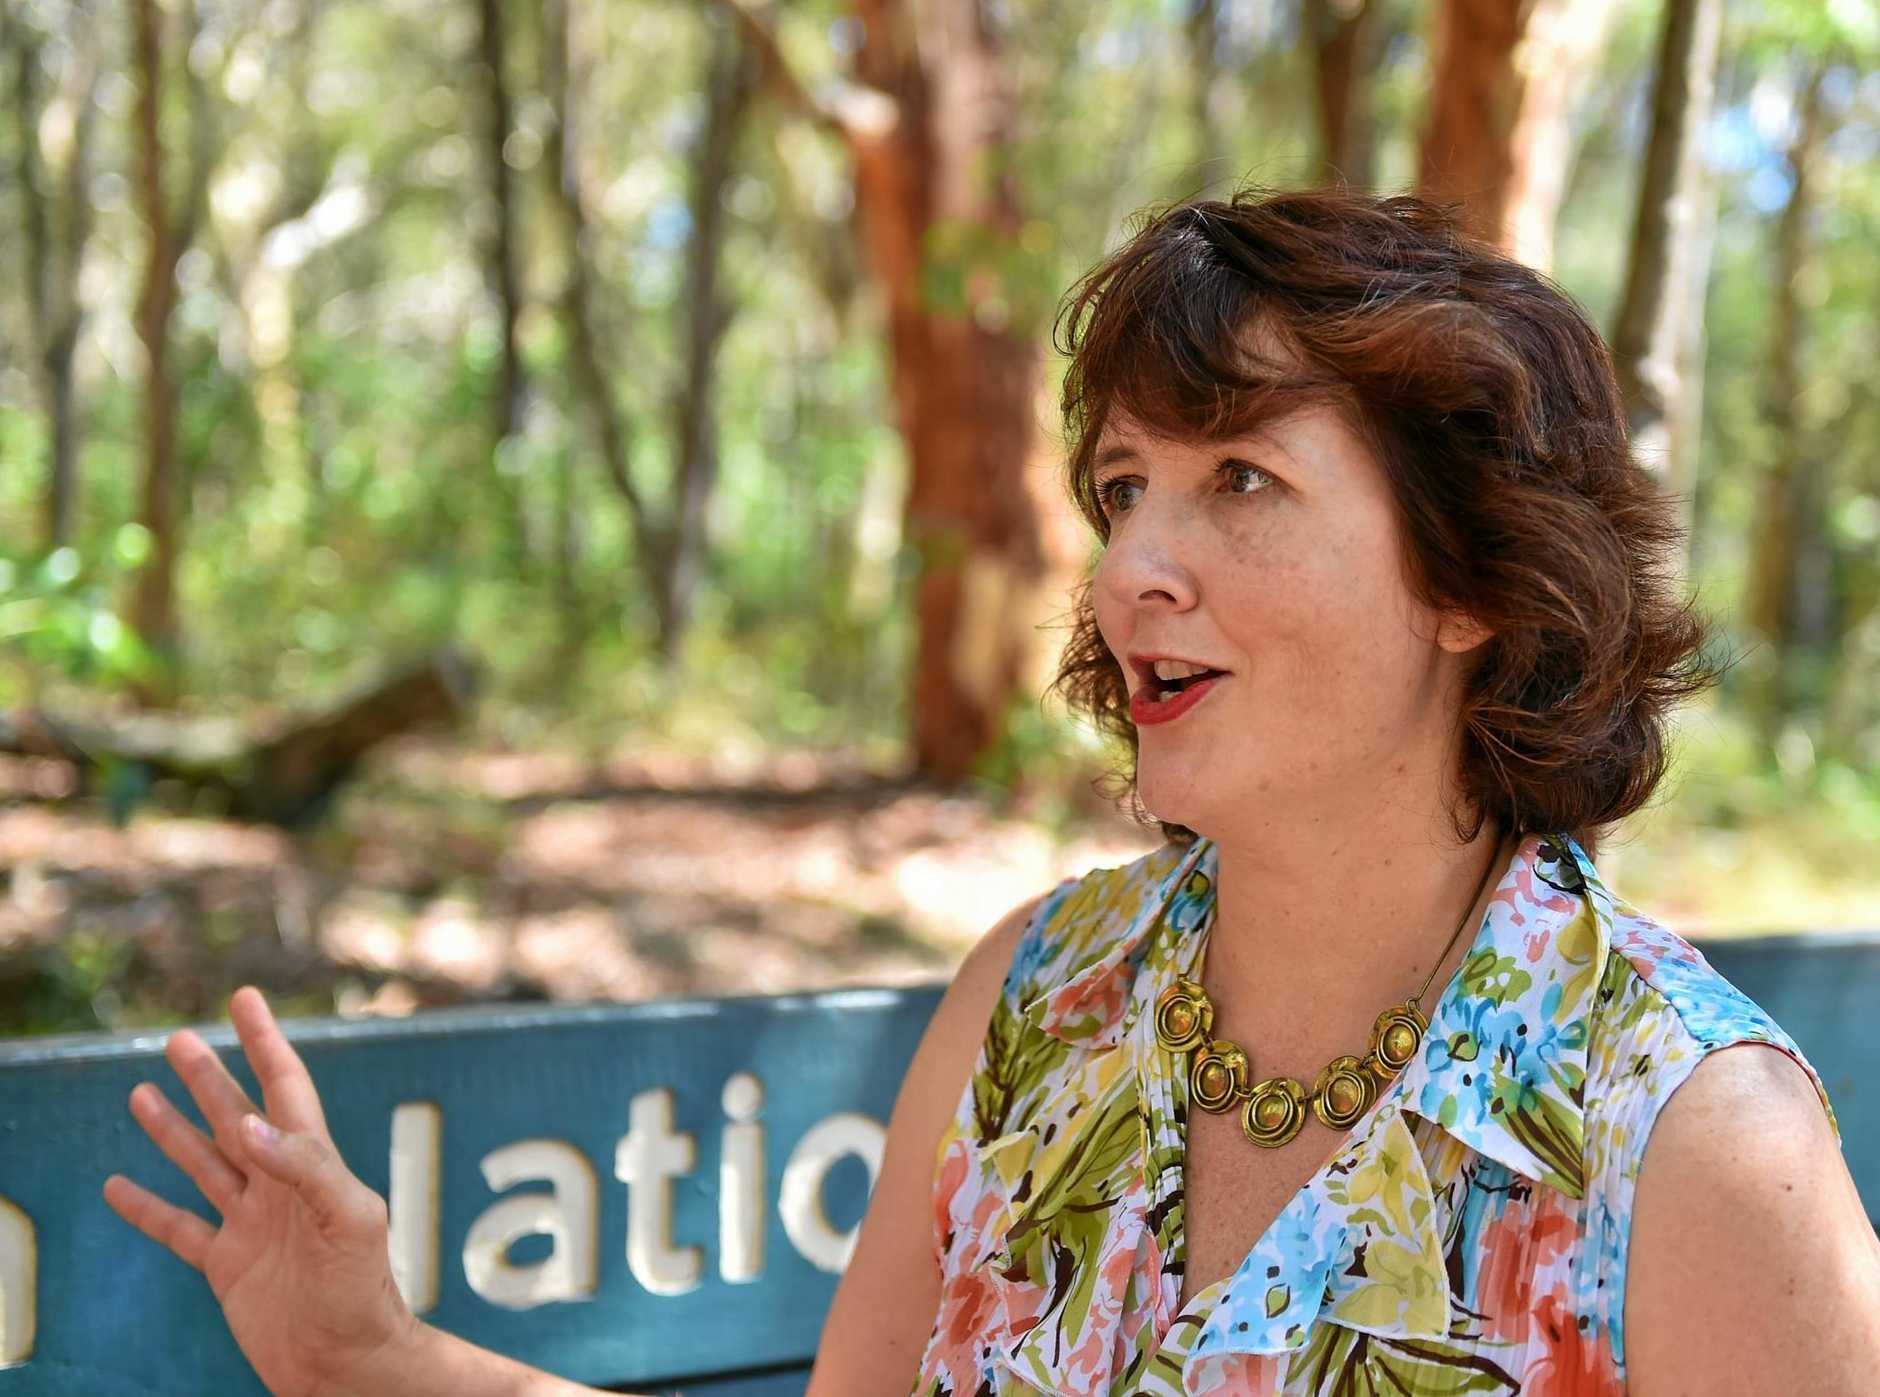 MAROOCHYDORE MP Fiona Simpson has criticised the density of the Sekisui development and what she sees as an inadequate assessment by the Department of Main Roads of the broader impacts.